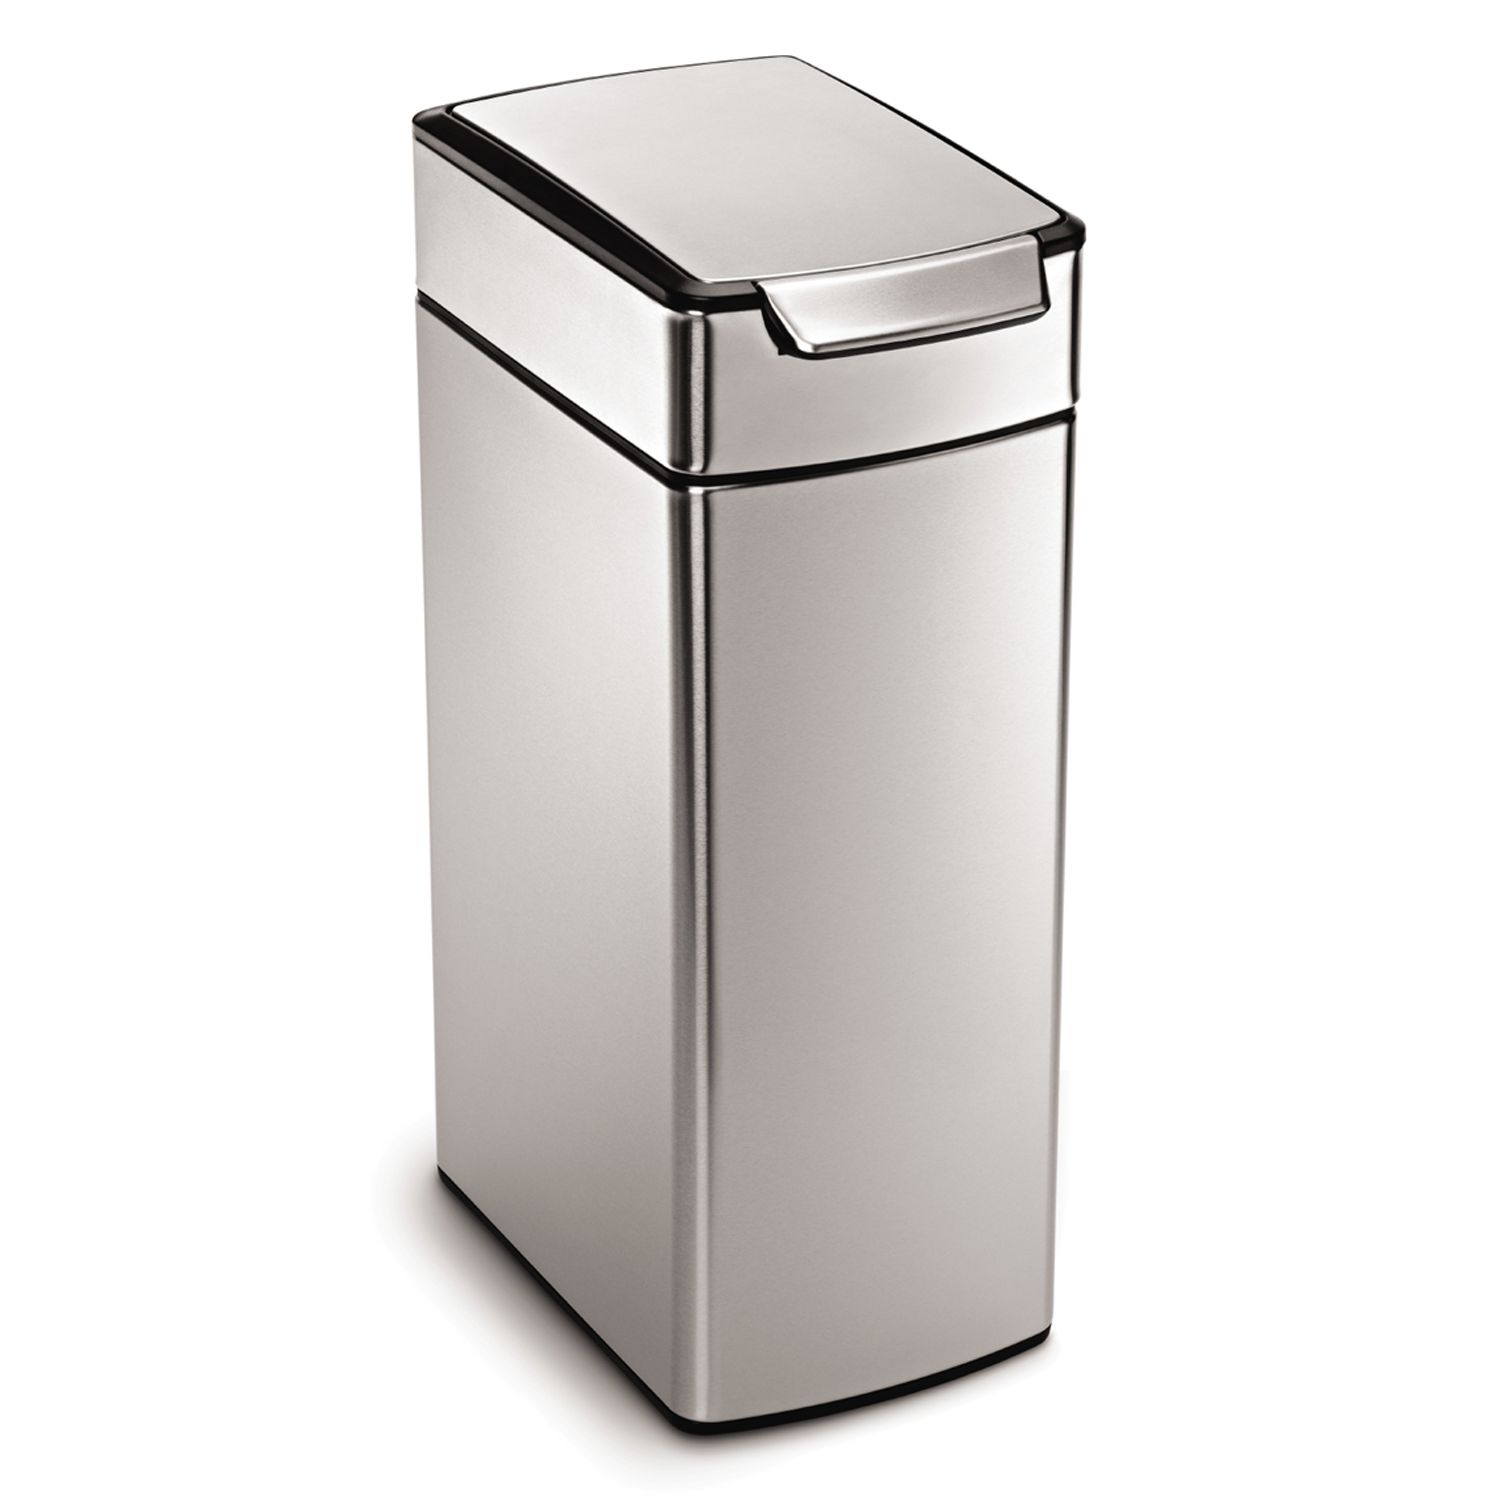 simplehuman 105gallon slim touch bar trash can